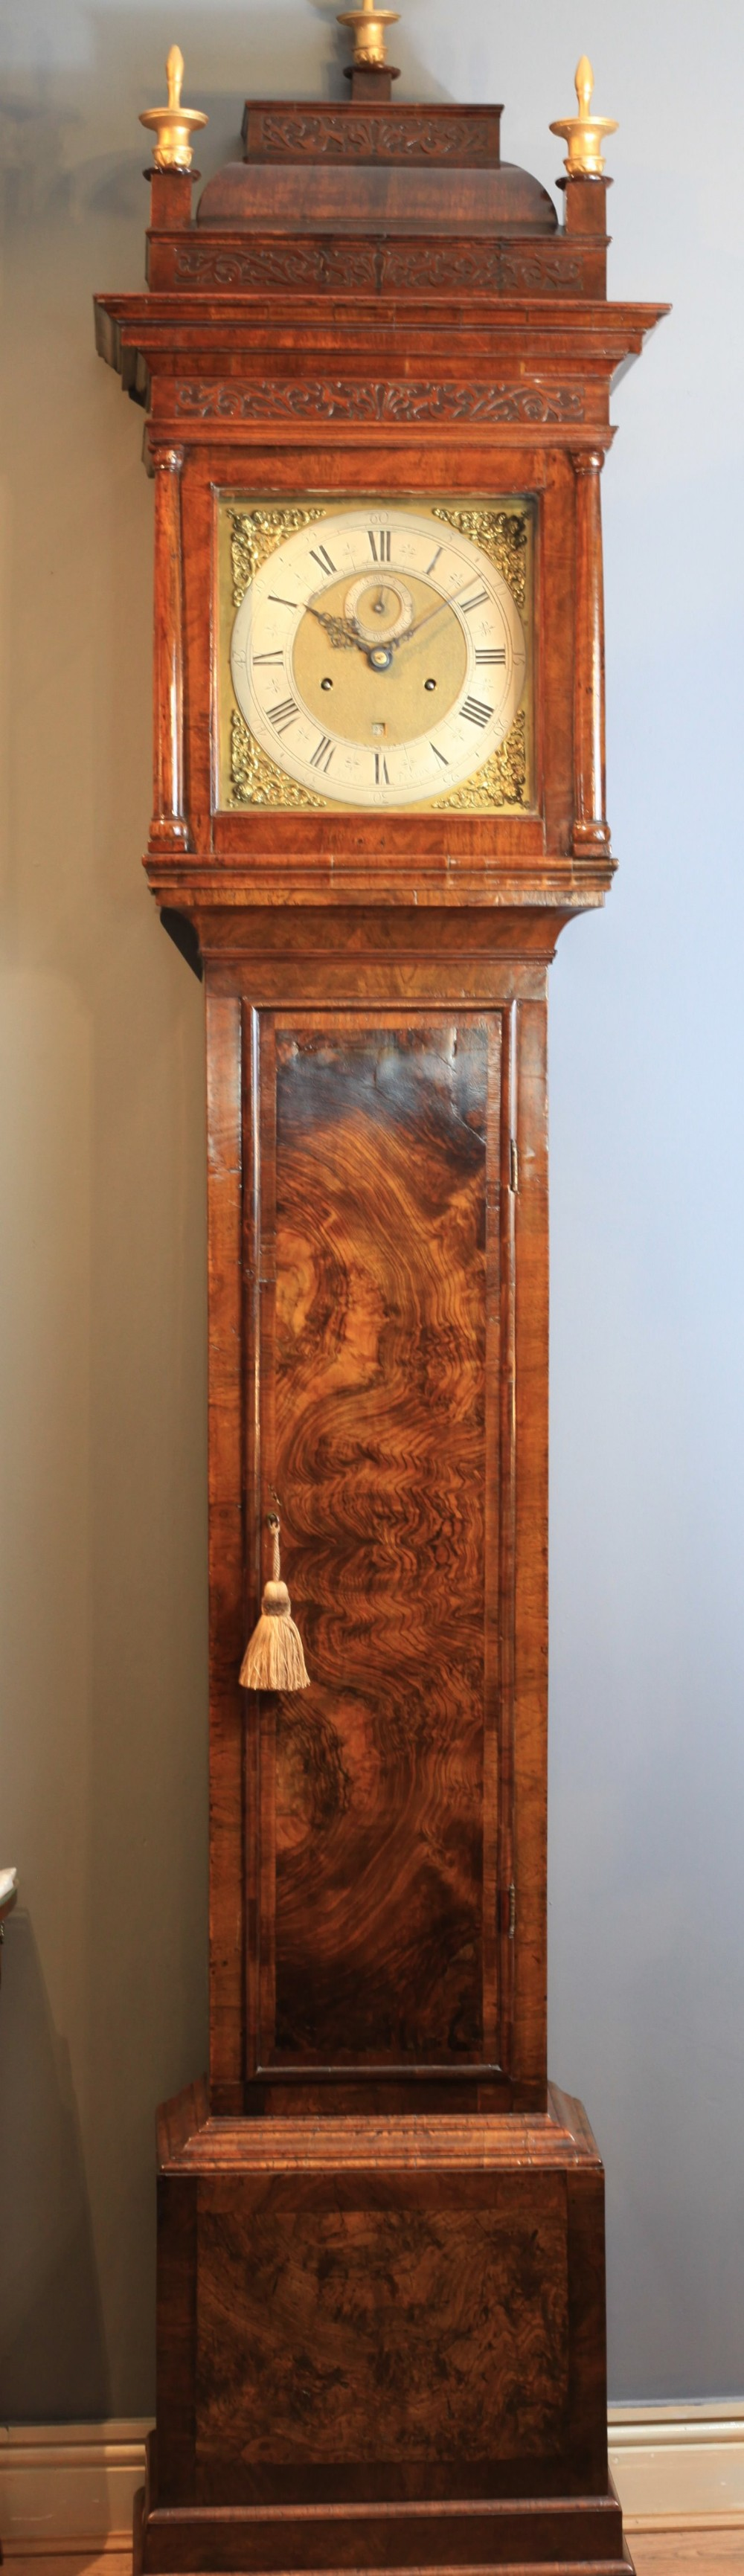 a stunning queen anne month duration book leaf figured walnut longcase clock by roger penton c1690